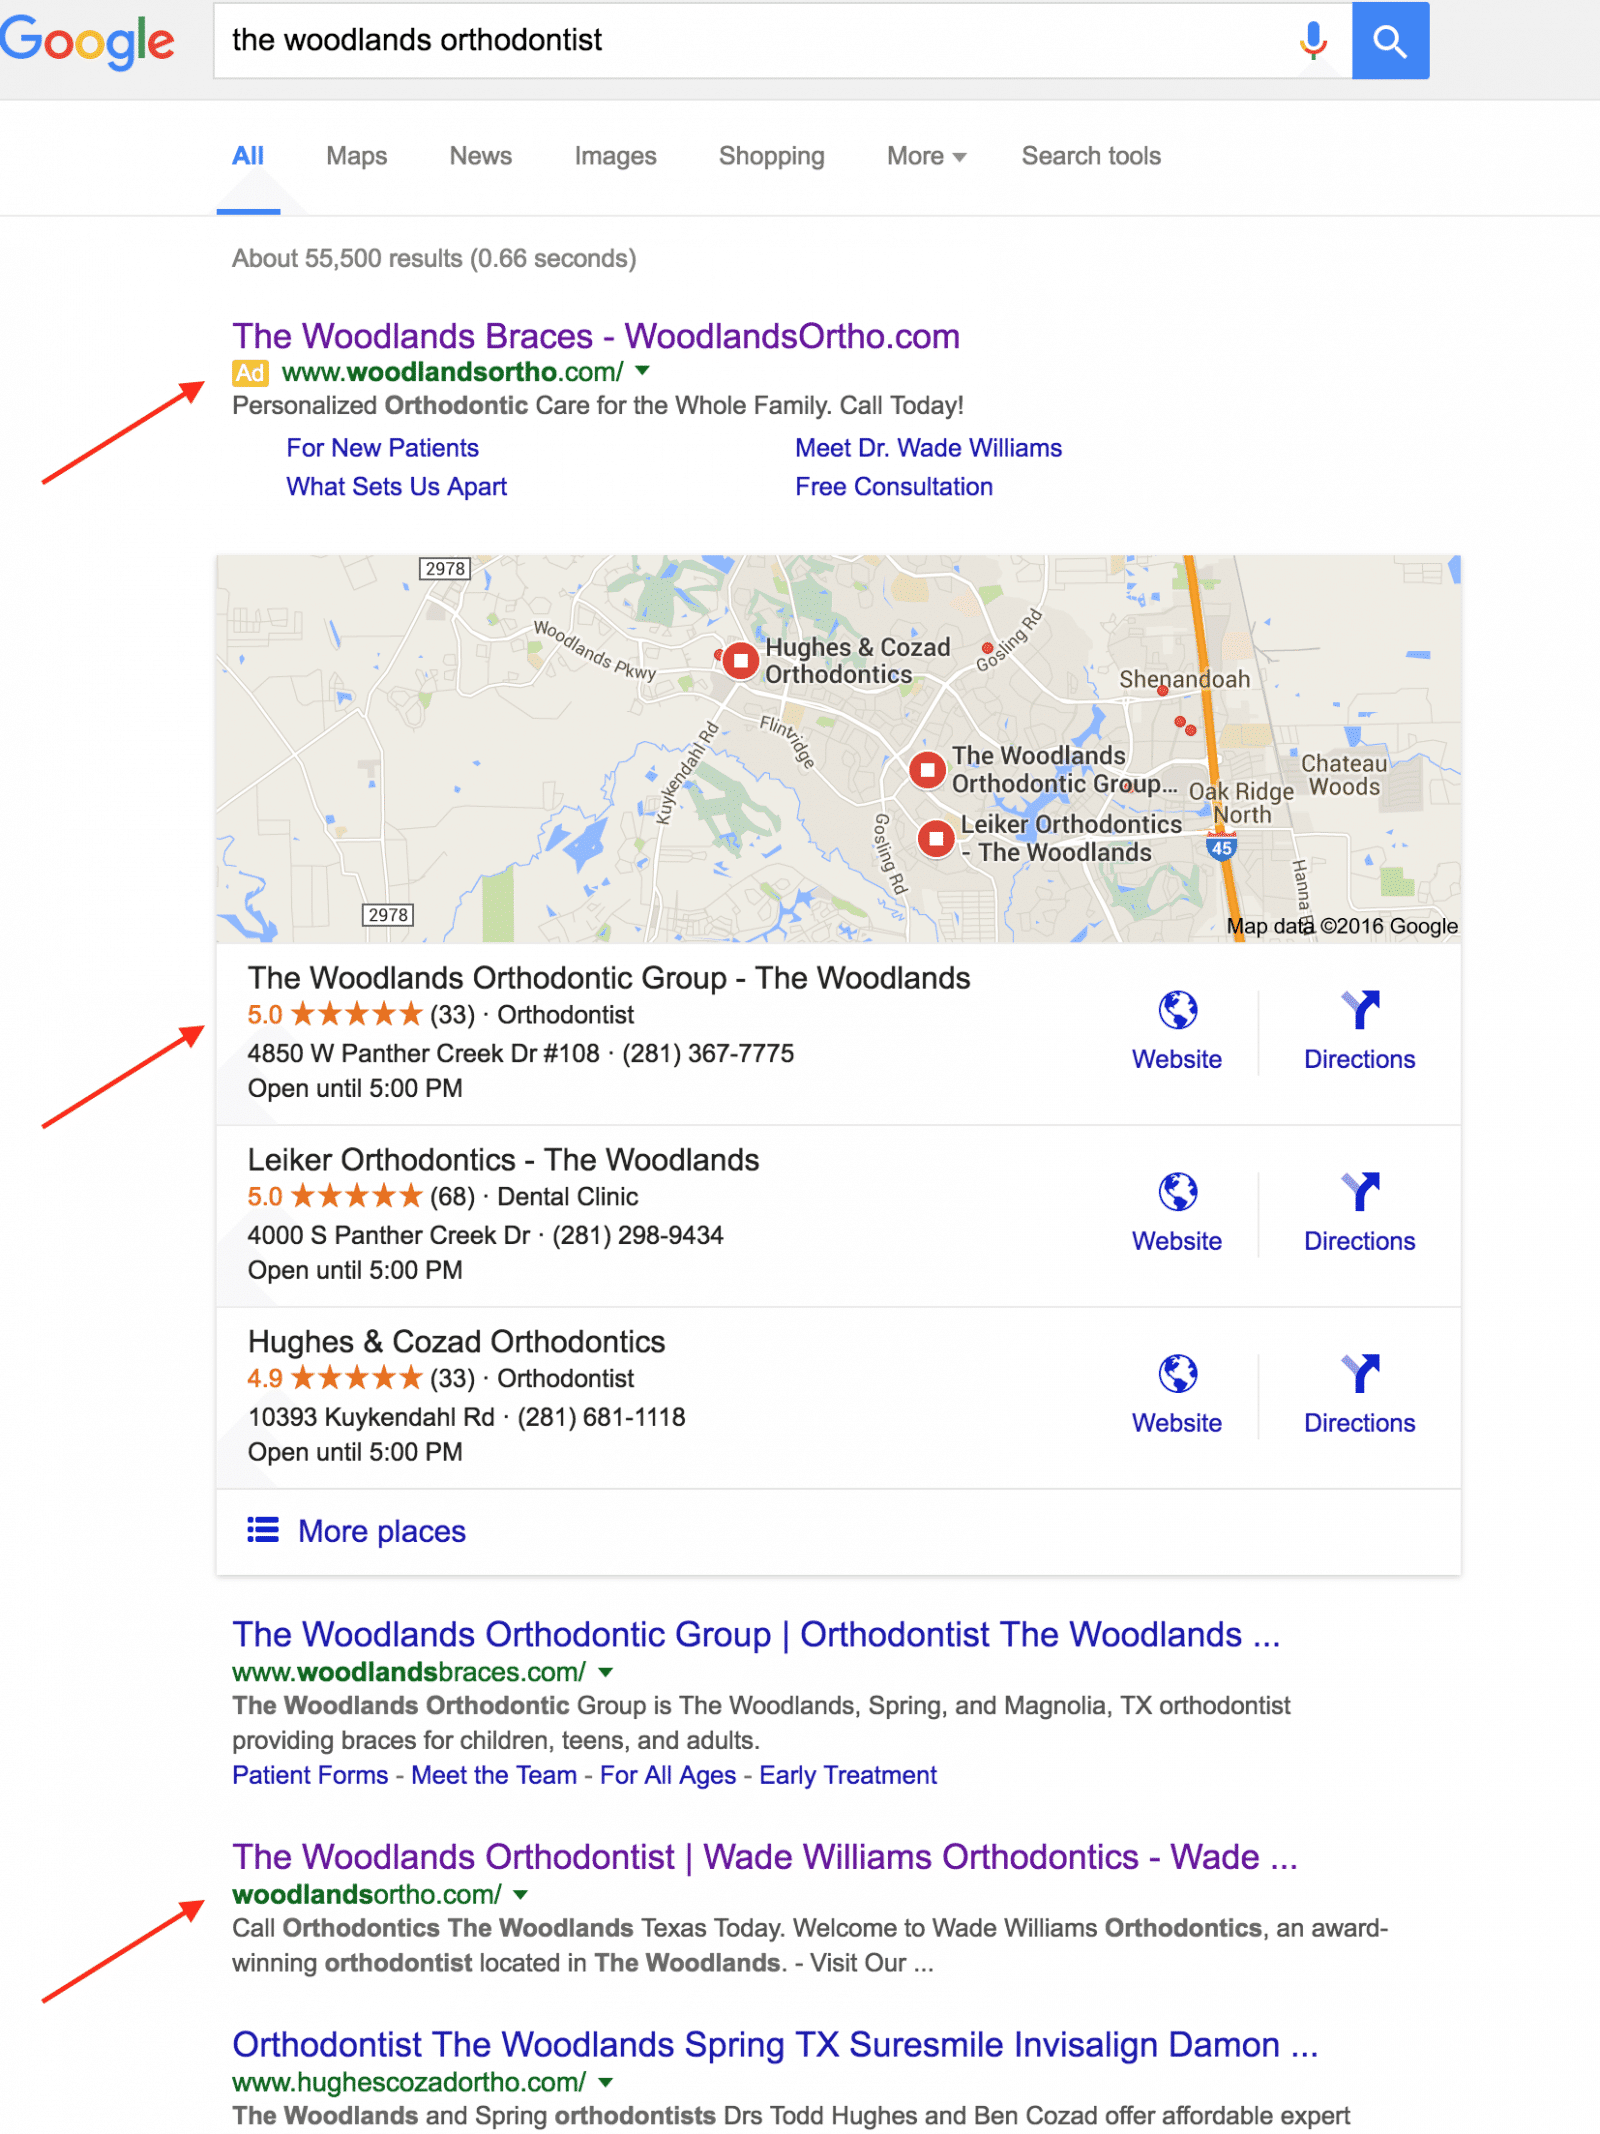 seo success example